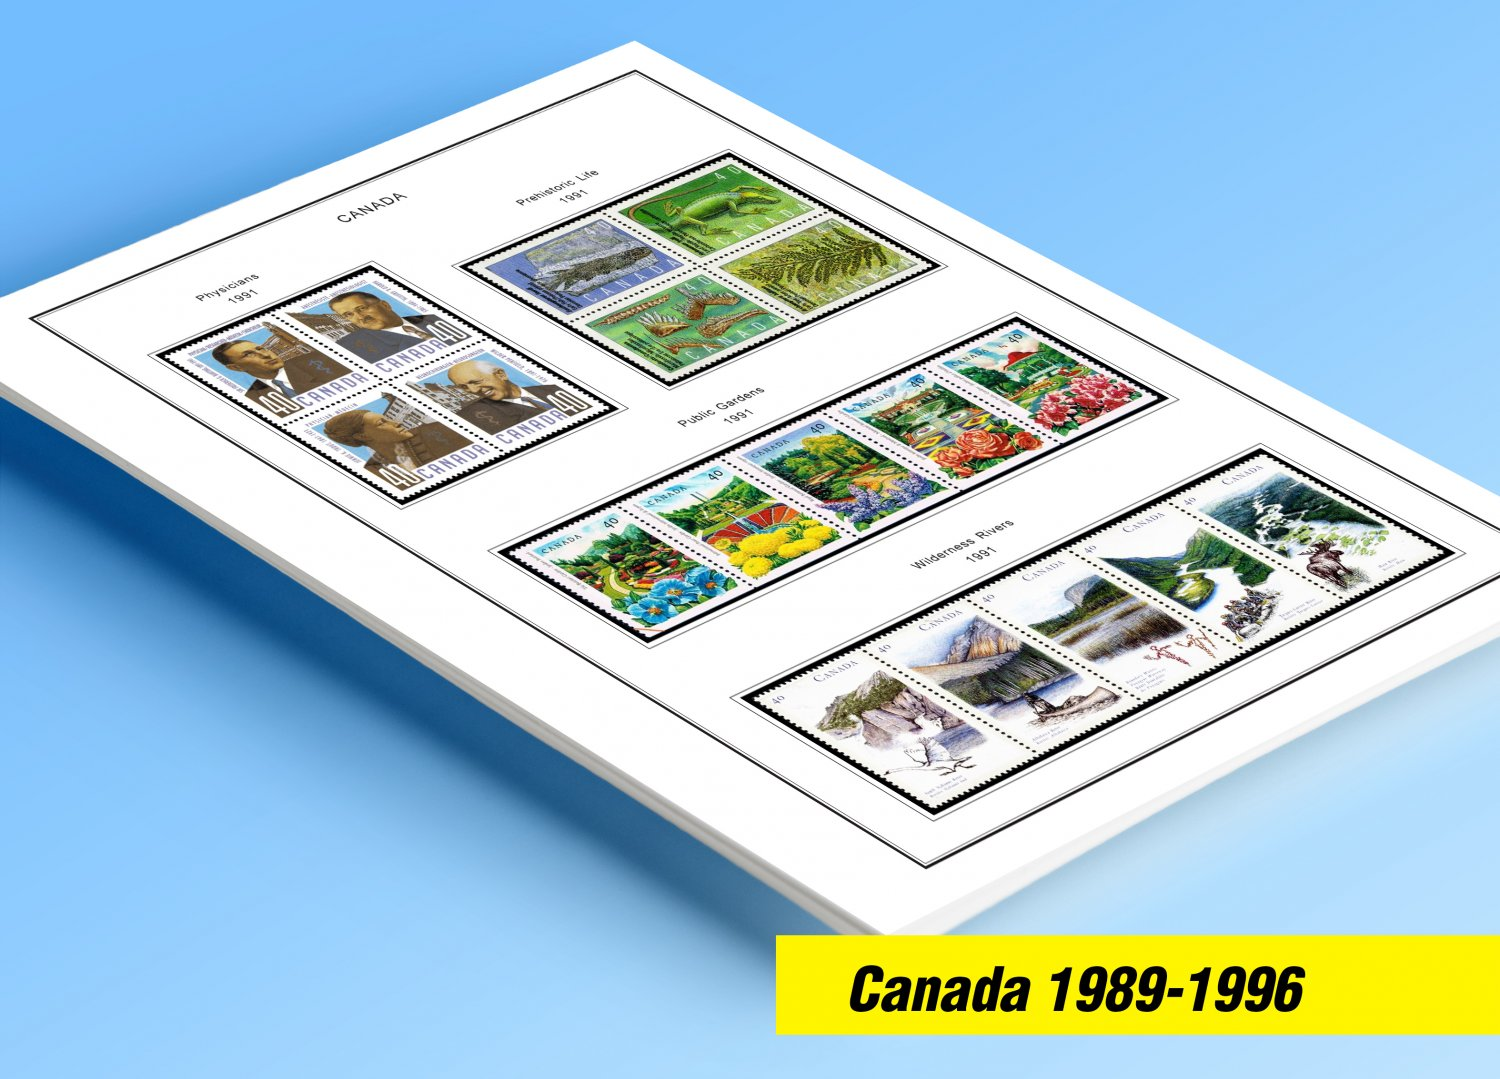 COLOR PRINTED CANADA 1989-1996 STAMP ALBUM PAGES (50 illustrated pages)